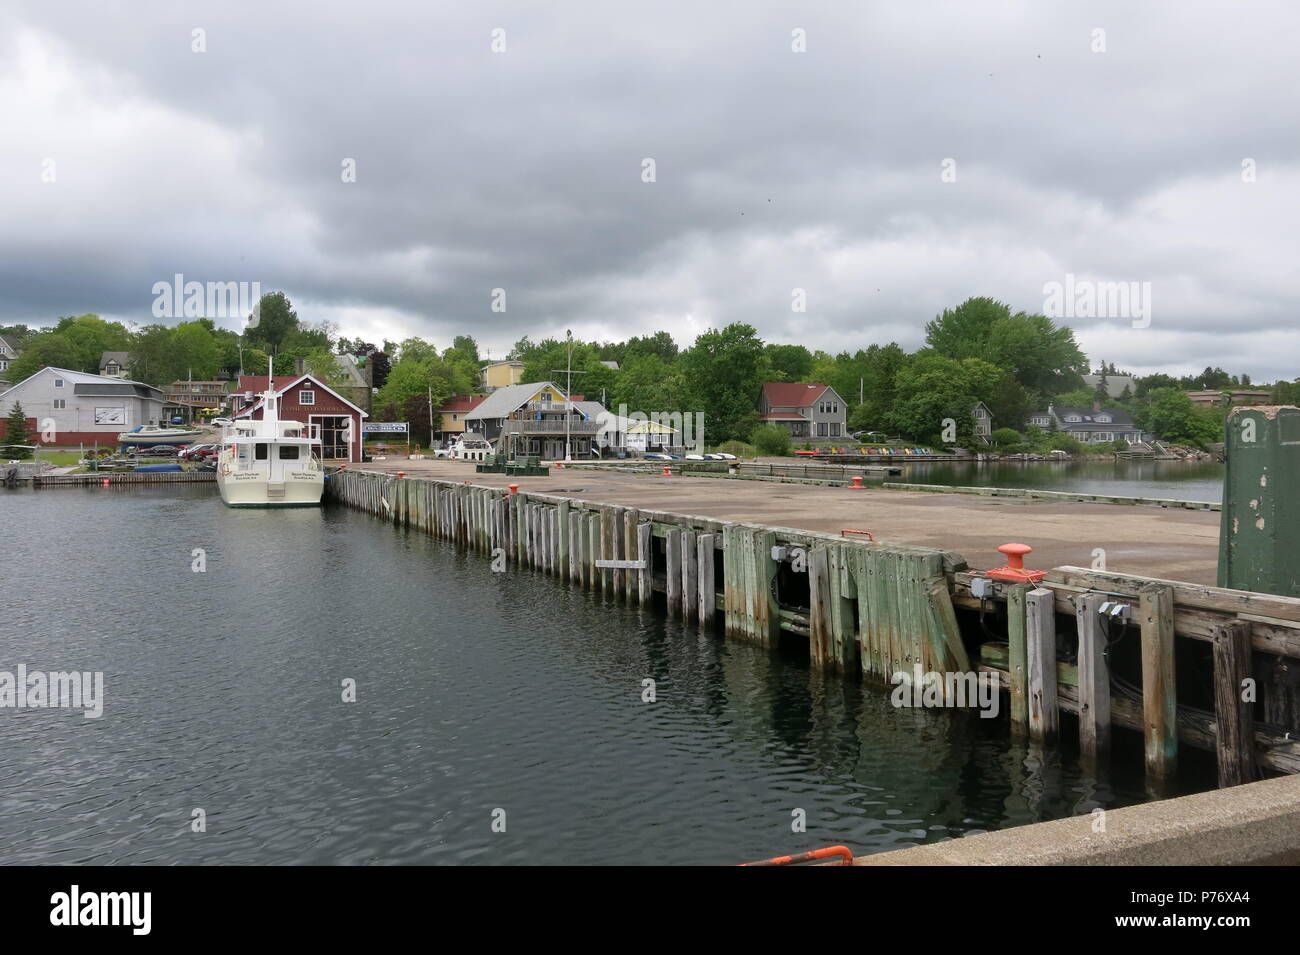 A view along the wharf at Baddeck on the shores of Bras d'Or Lake, Nova Scotia, Canada - Stock Image